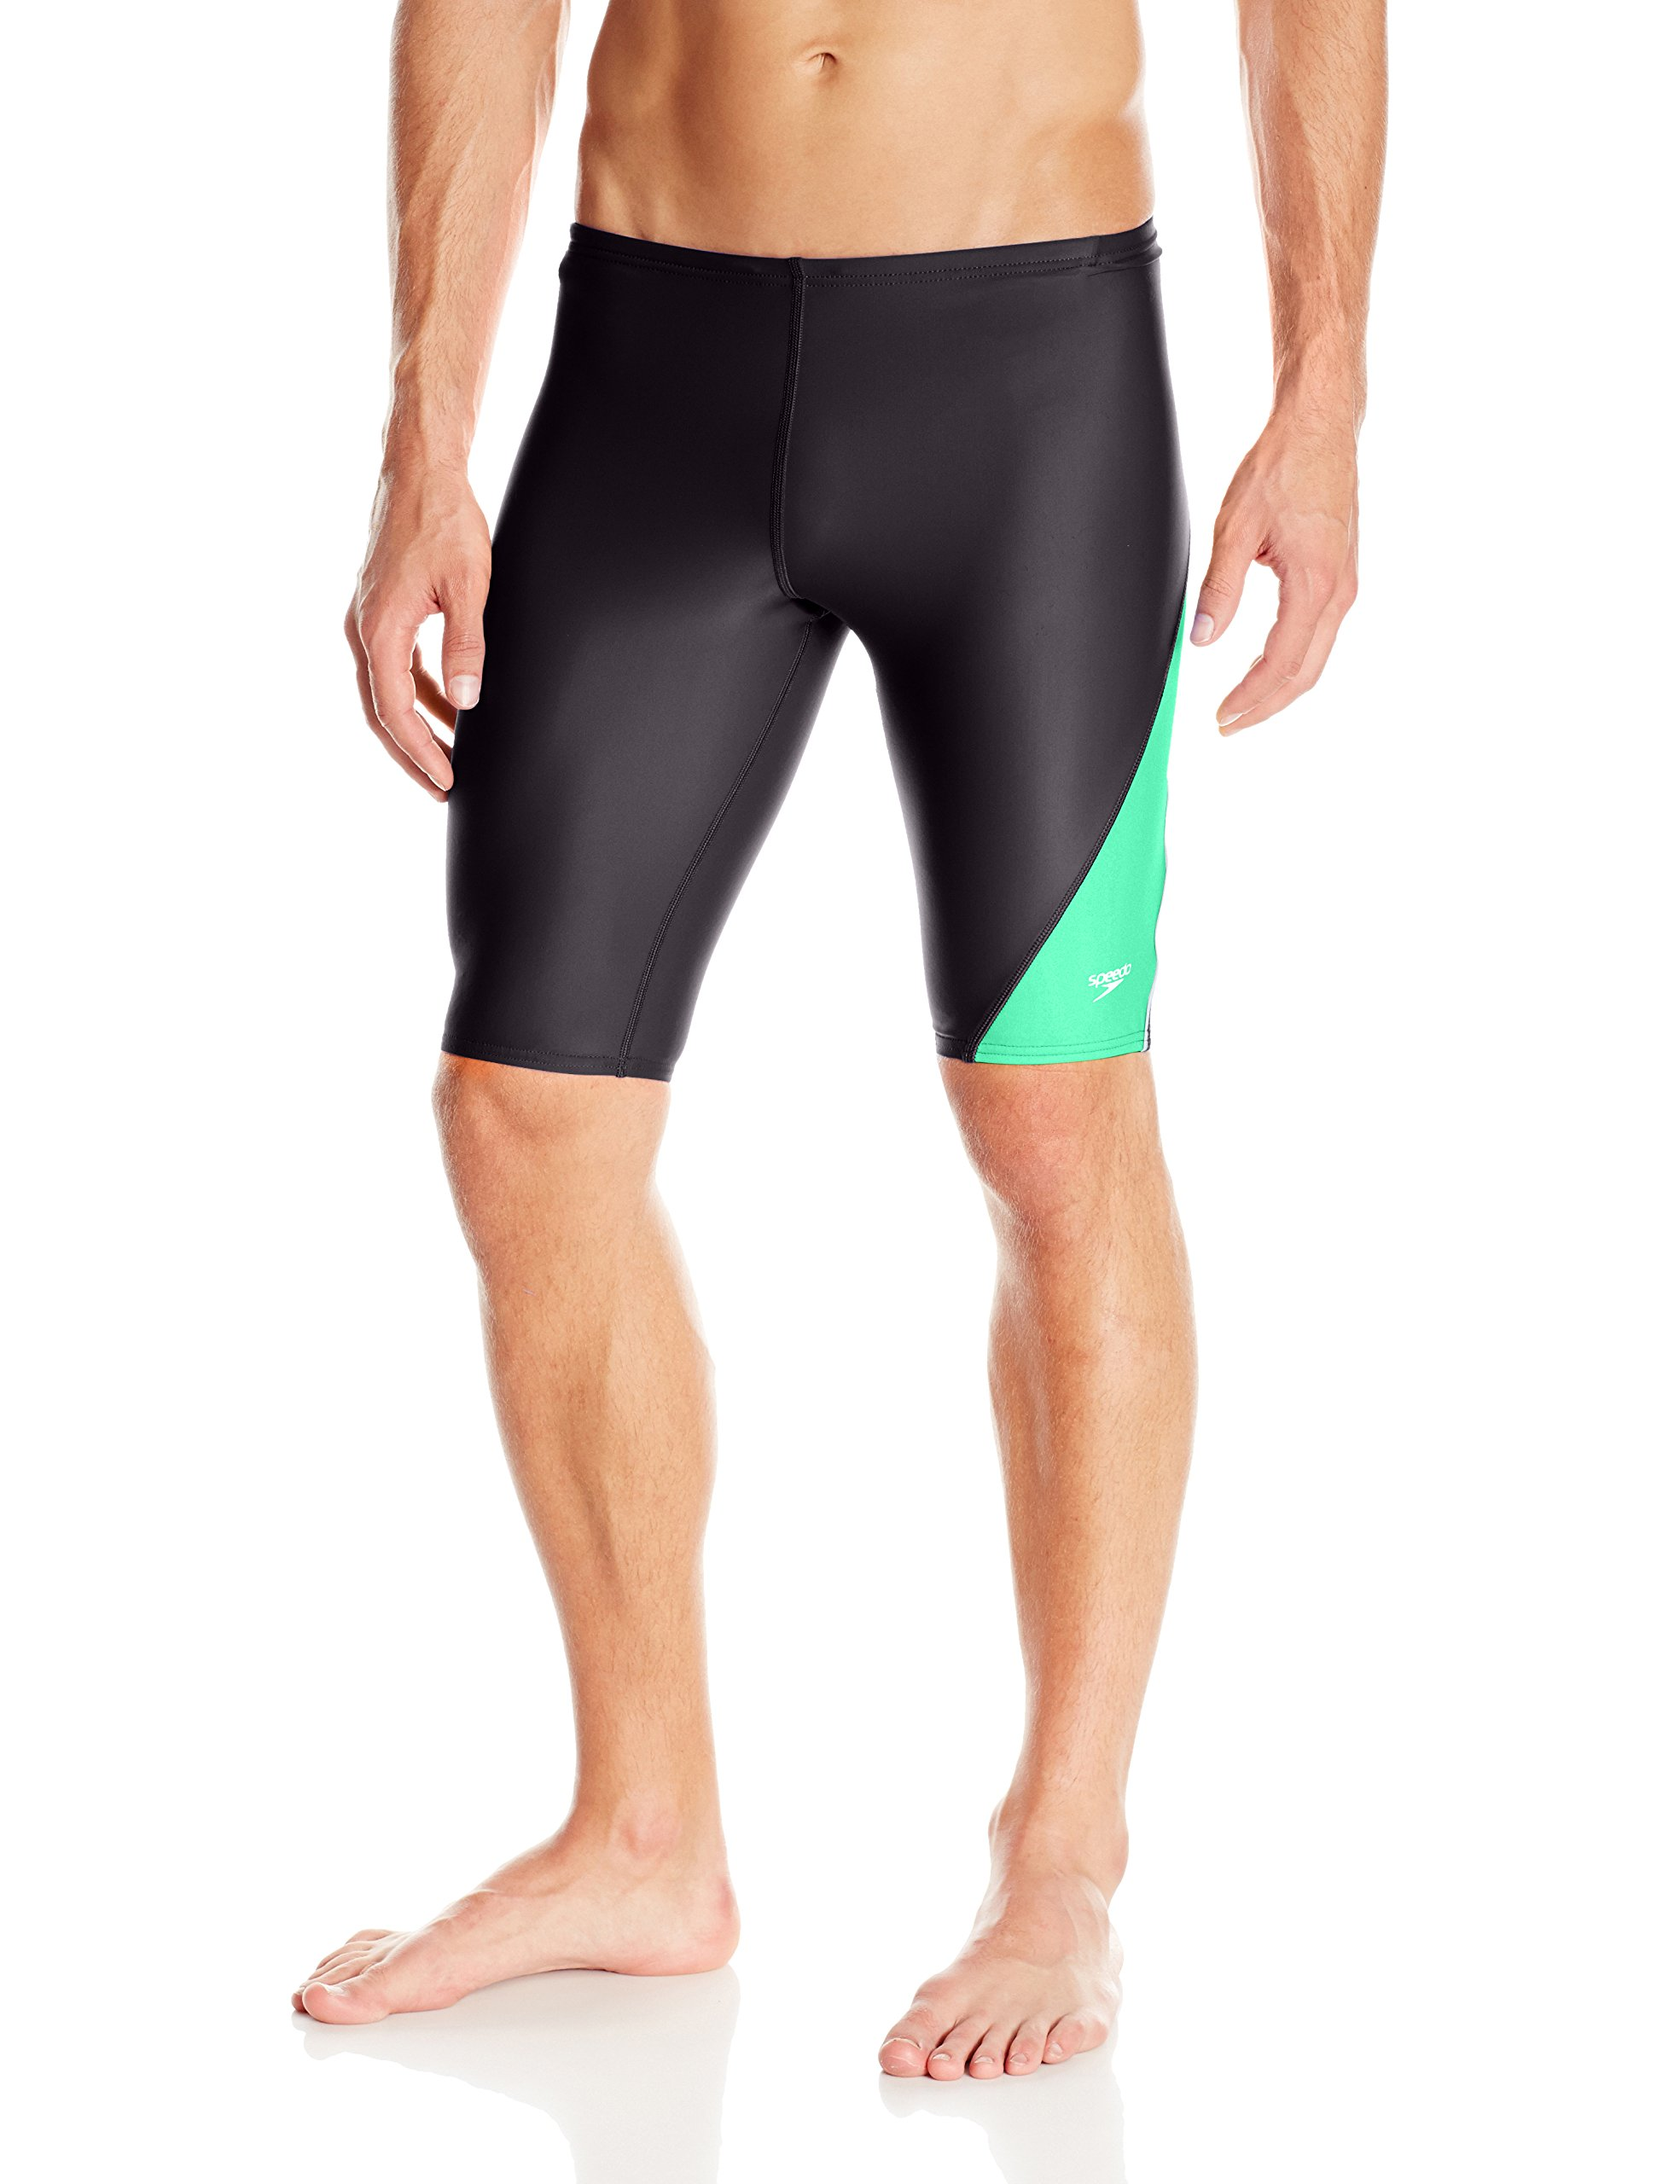 Speedo Men and Boys' Jammer Swimsuit-PowerFLEX Eco Revolve Splice, Green, 30 by Speedo